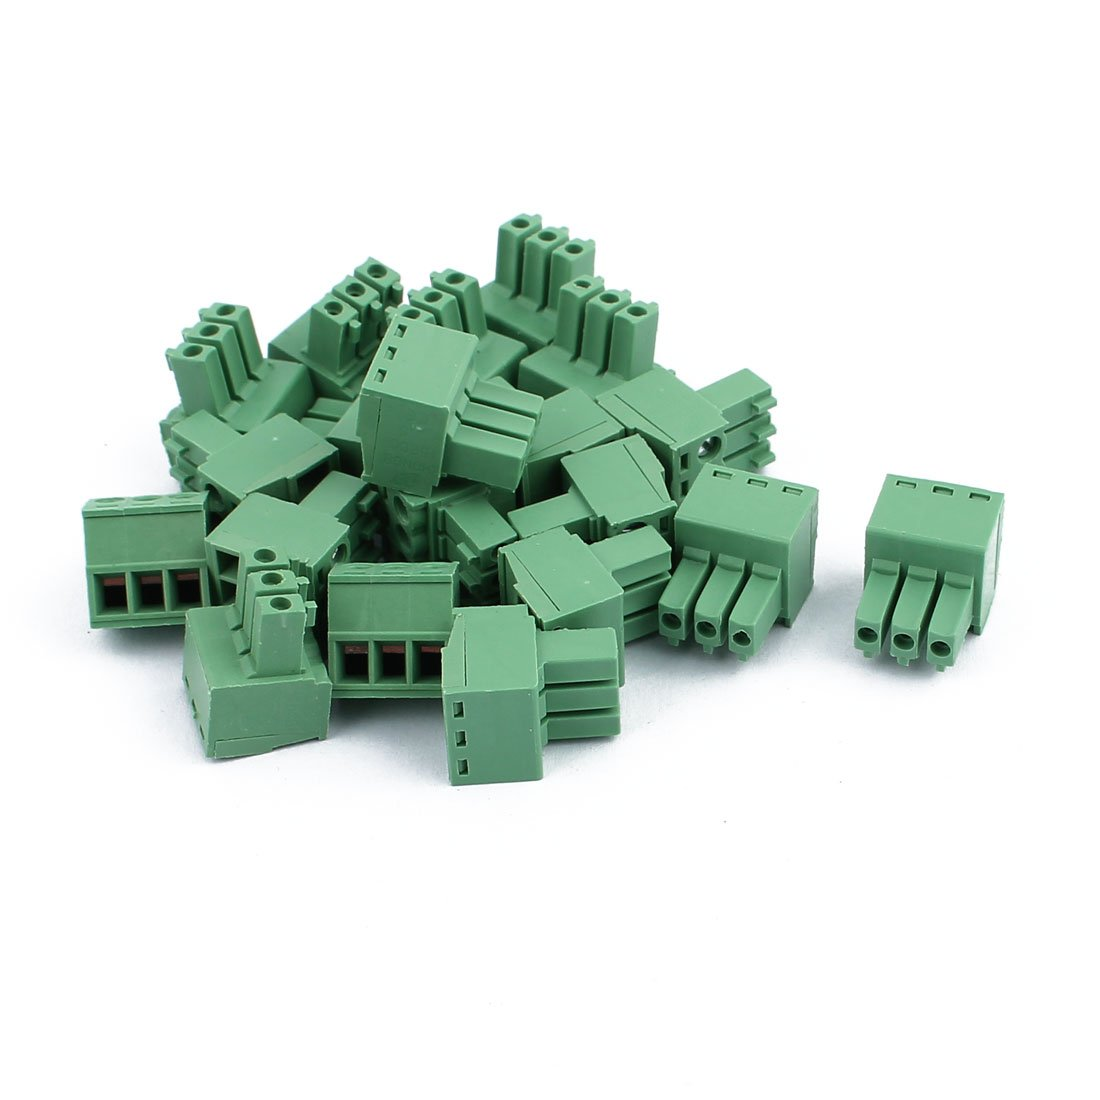 uxcell 20Pcs 300V KF2EDGK 3.5mm Pitch 3-Pin PCB Screw Terminal Block Connector